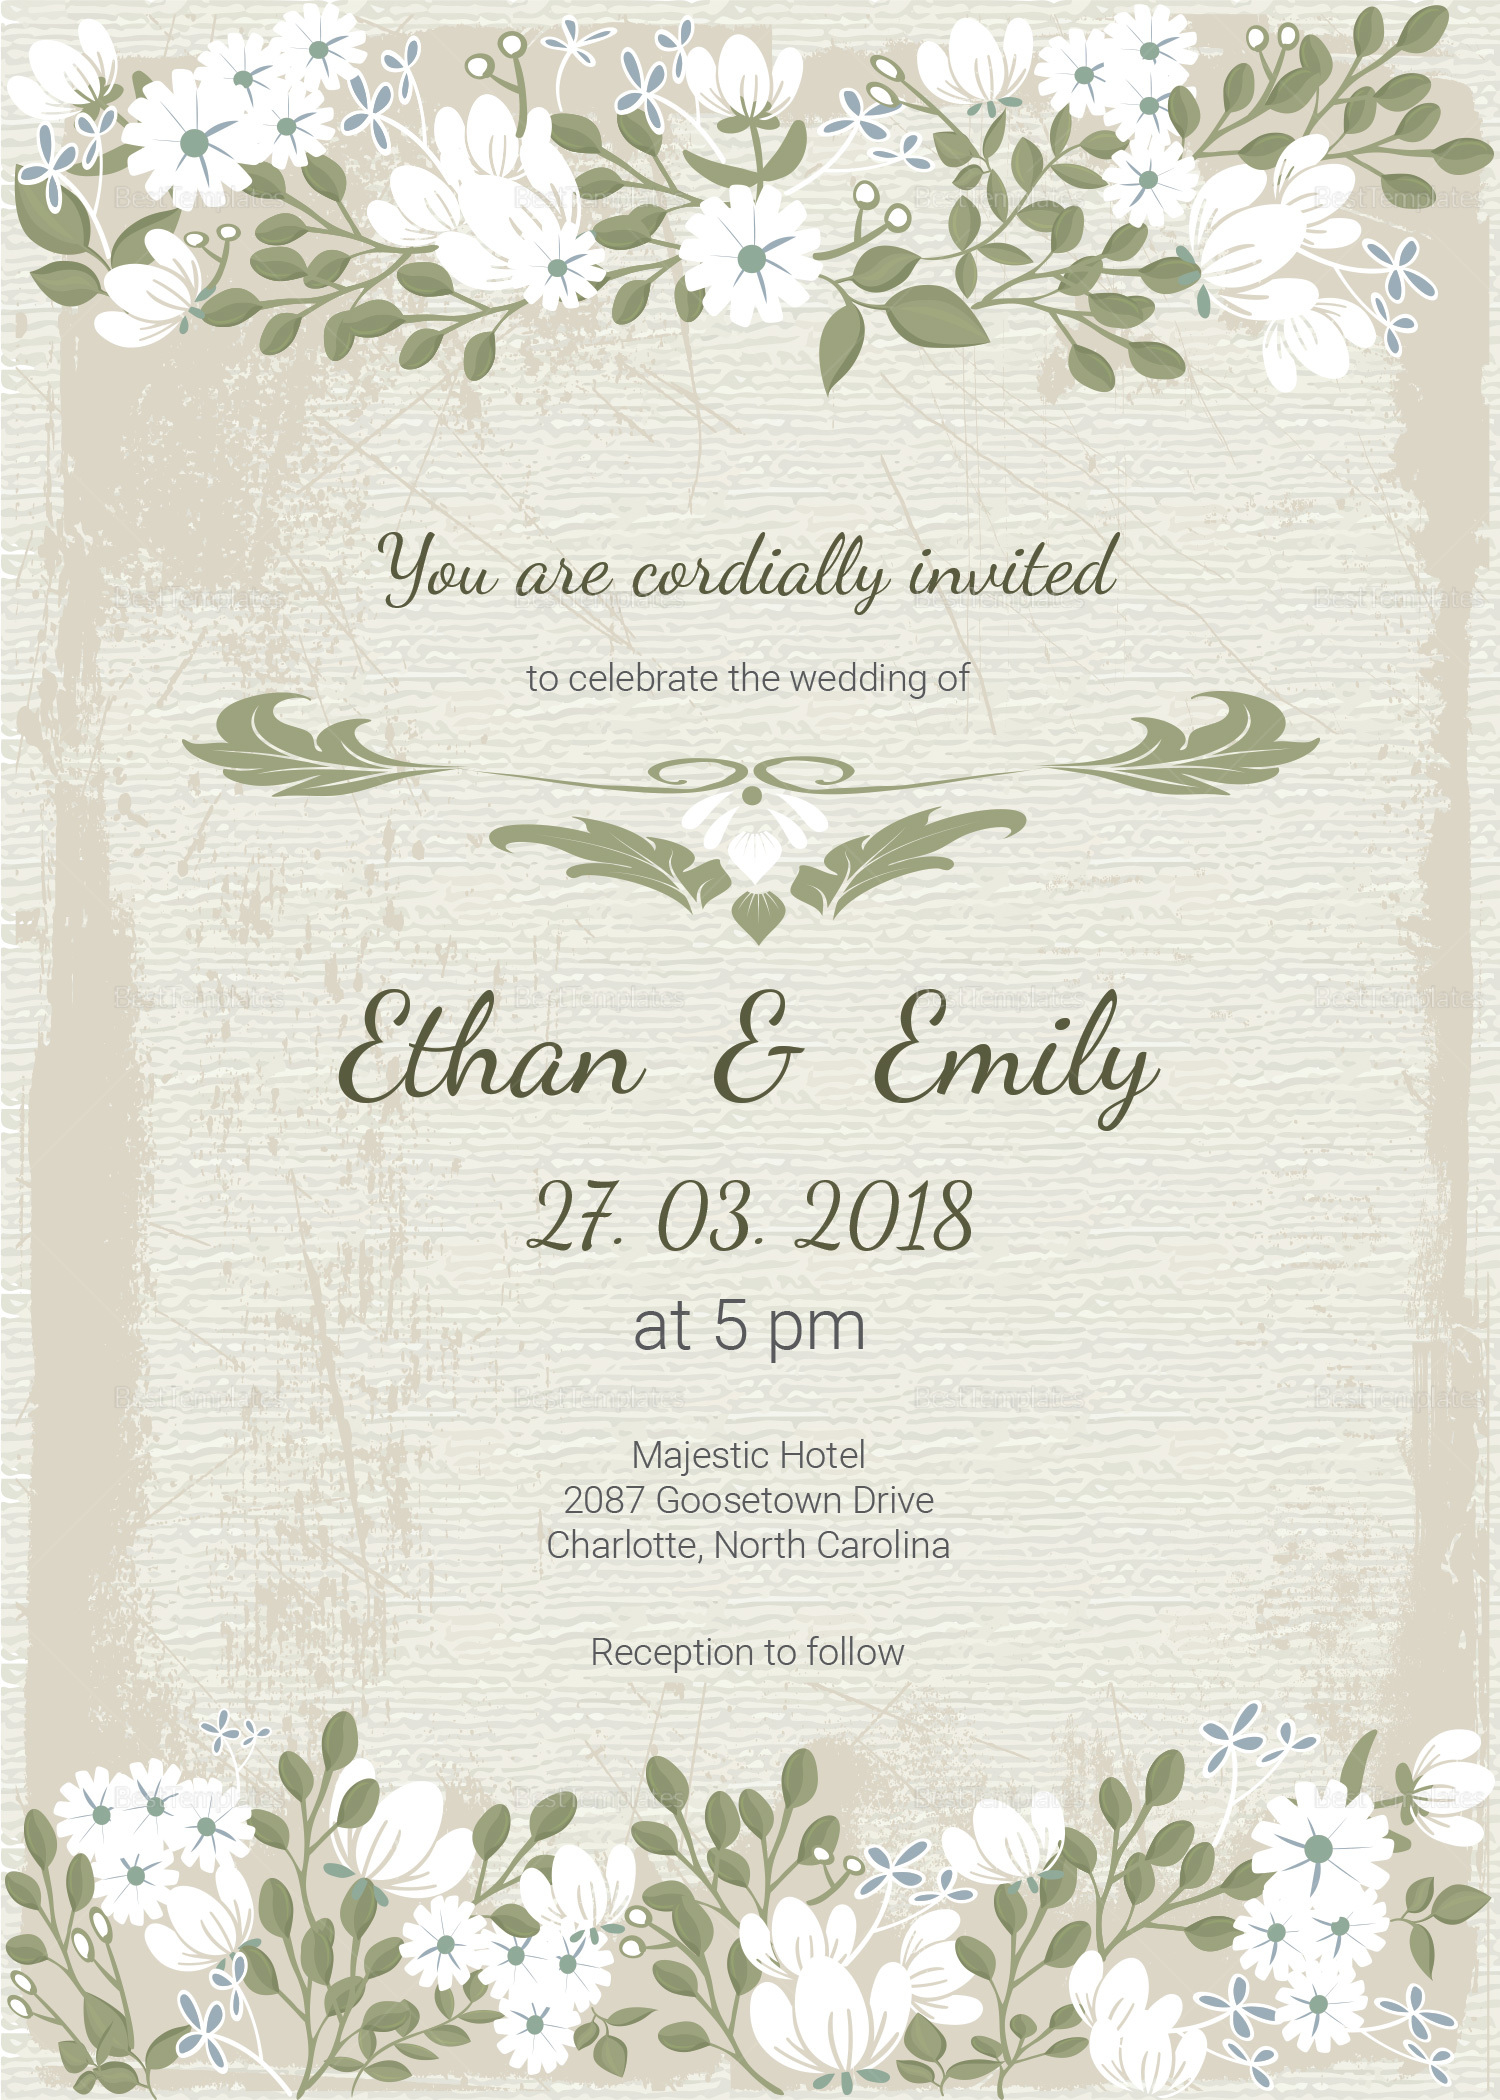 Einvitation Card Kalde Bwong Co